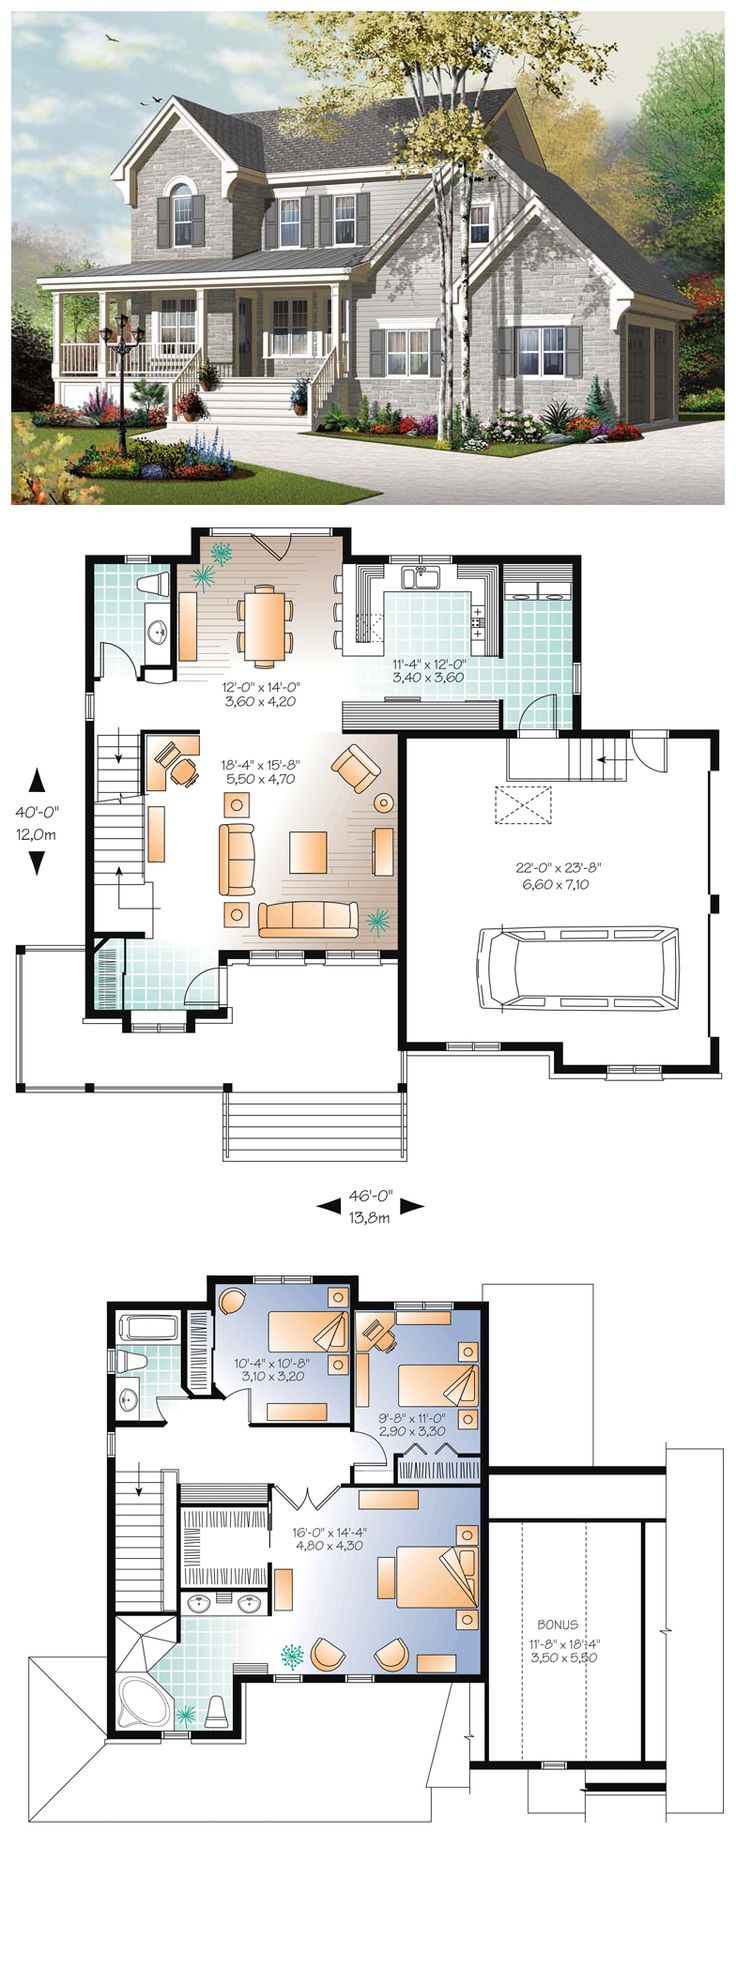 31 best images about sims 4 house plans on pinterest for East coast house plans